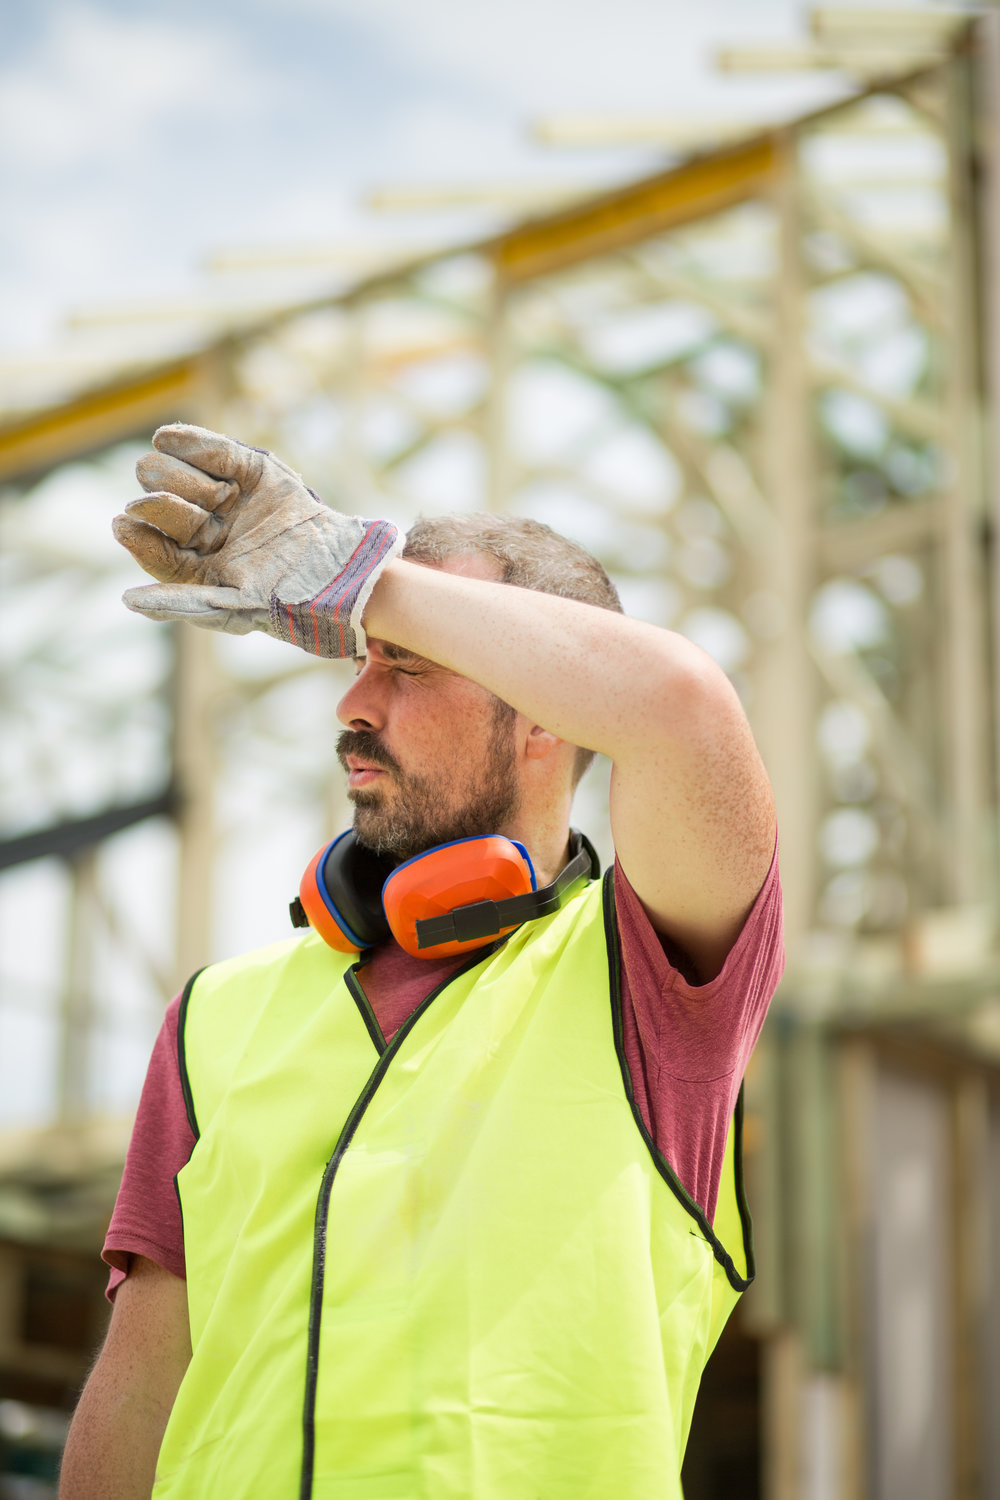 Safety Tips For Working In The Heat